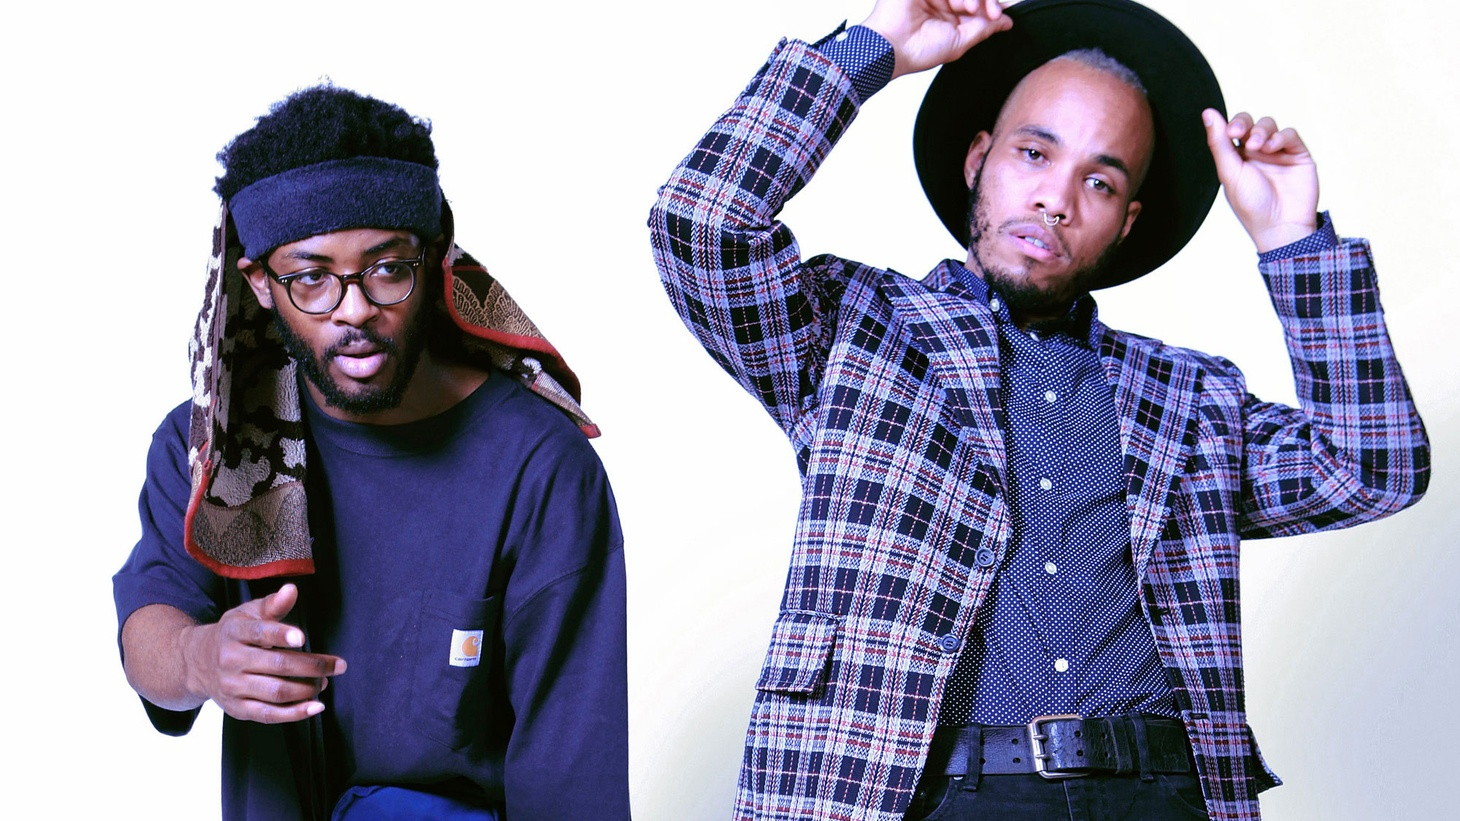 Soulful vocalist Anderson .Paak and producer Knxwledge team up as the acclaimed duo NxWorries.